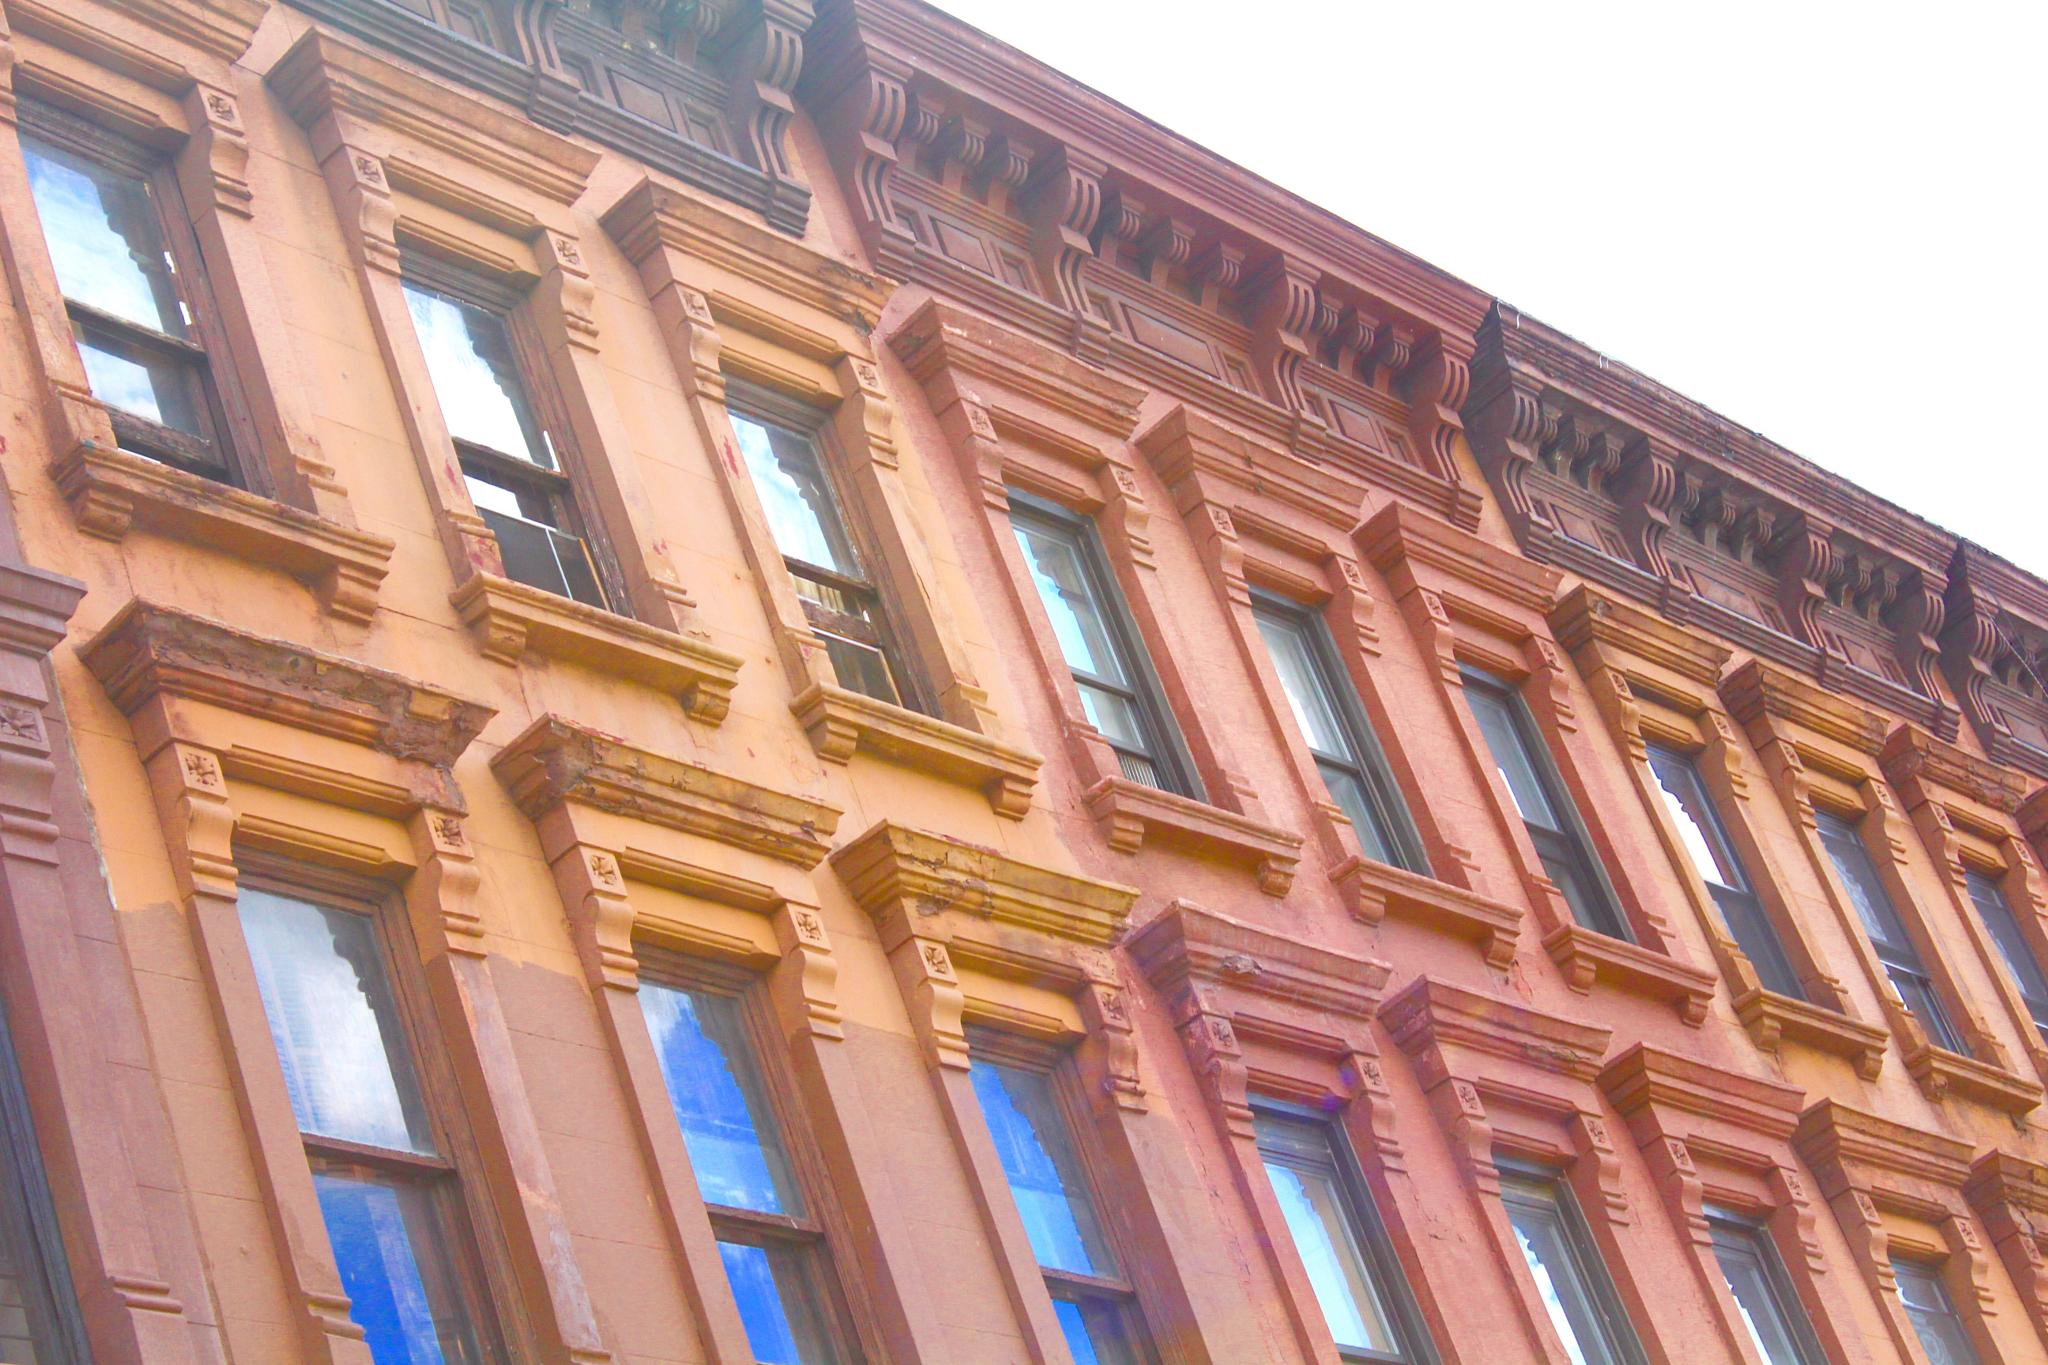 Brownstone in Harlem by Snickandmephotography